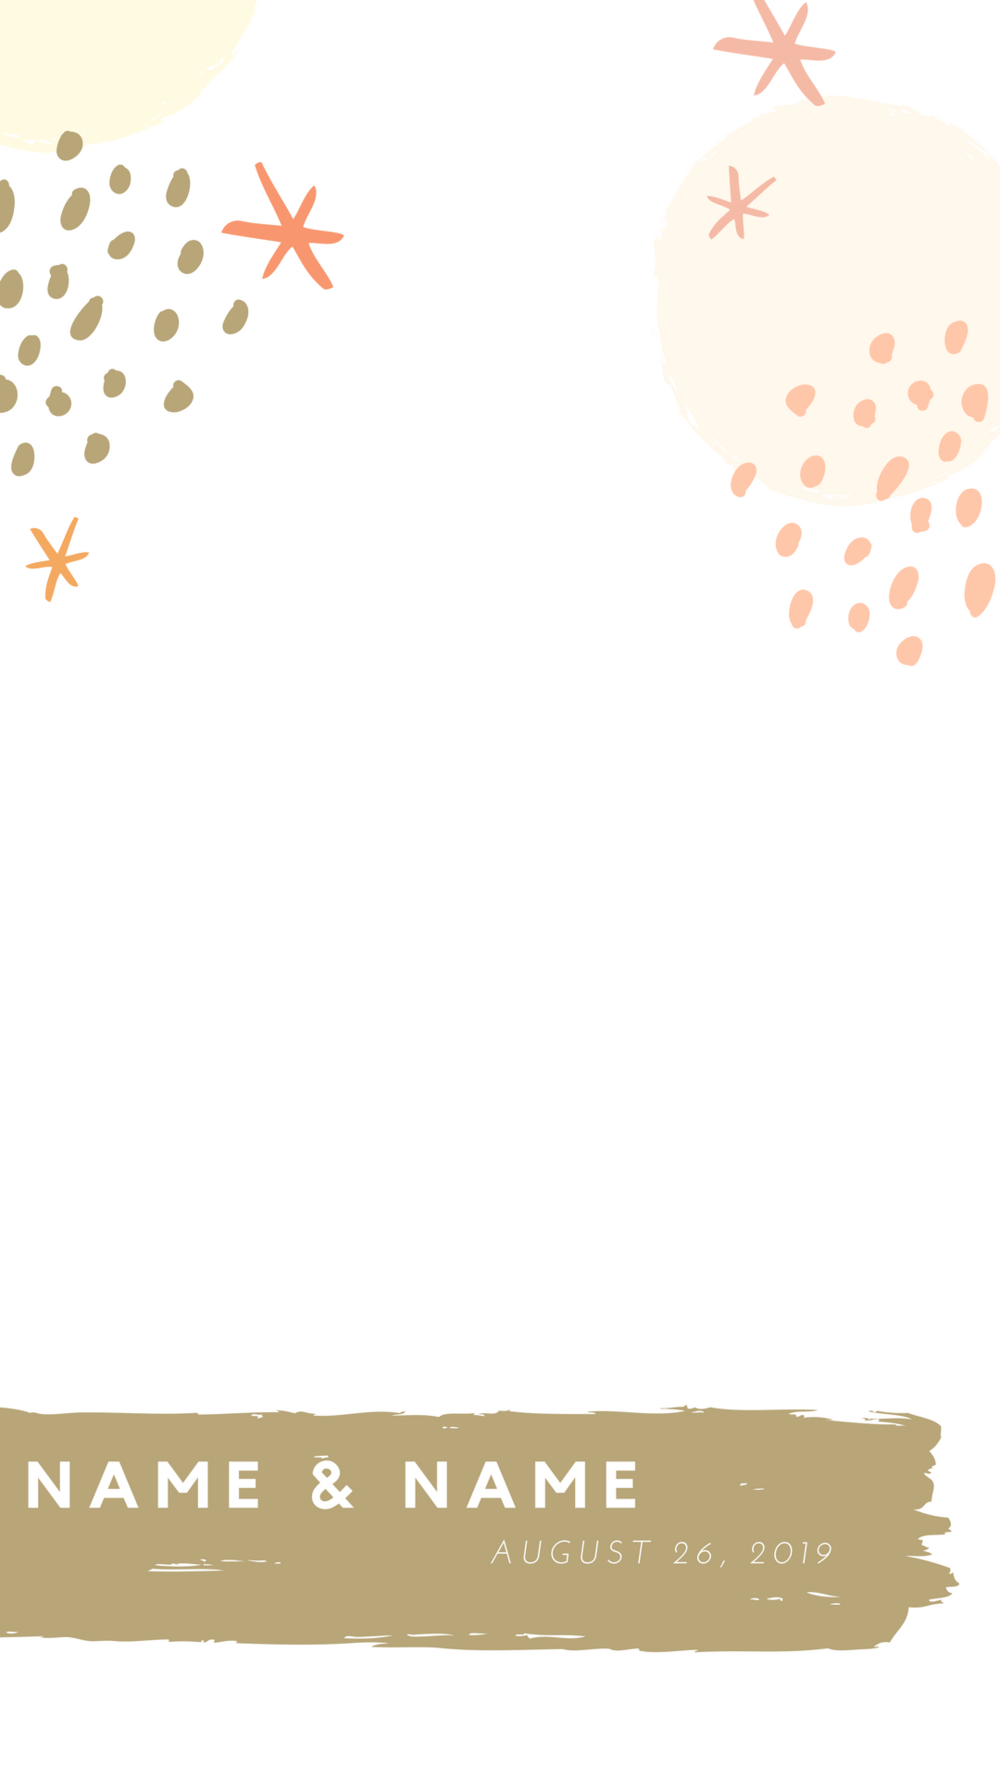 Inspired by the Arts Conceptual Nashville Wedding Geofilter